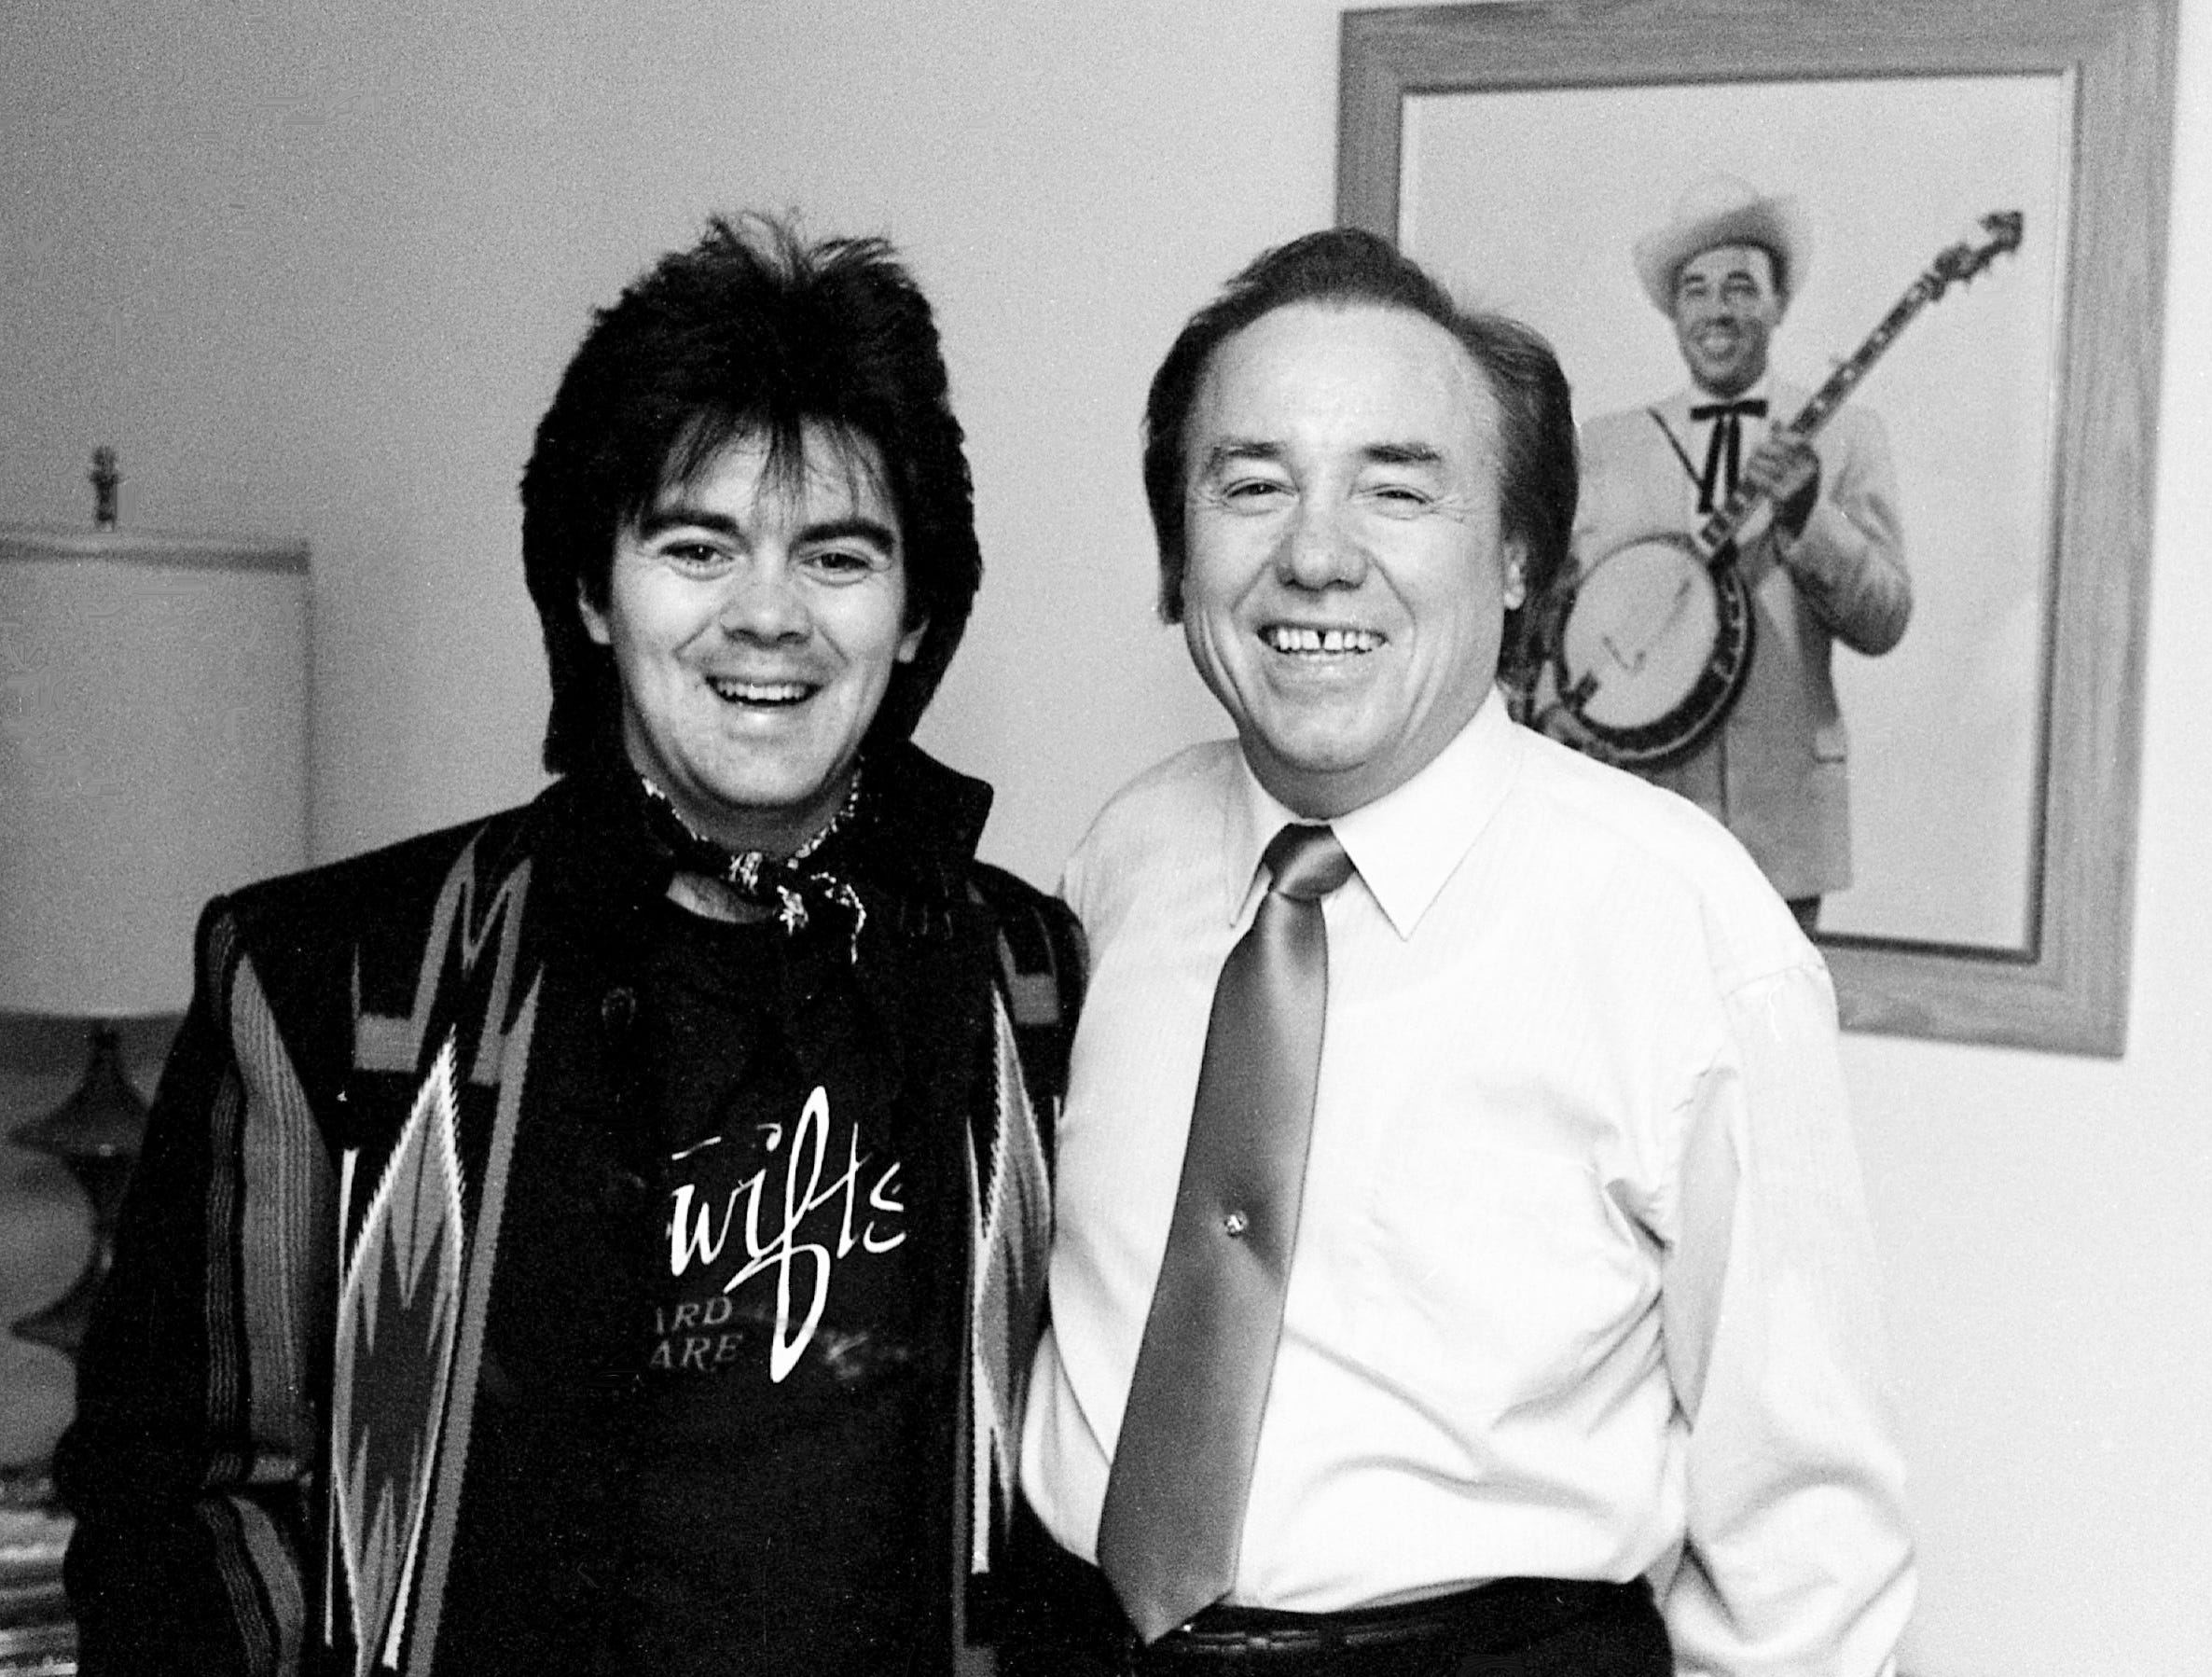 Close friend Marty Stuart, left, helps Earl Scruggs celebrate his 60th birthday Jan. 6, 1984.